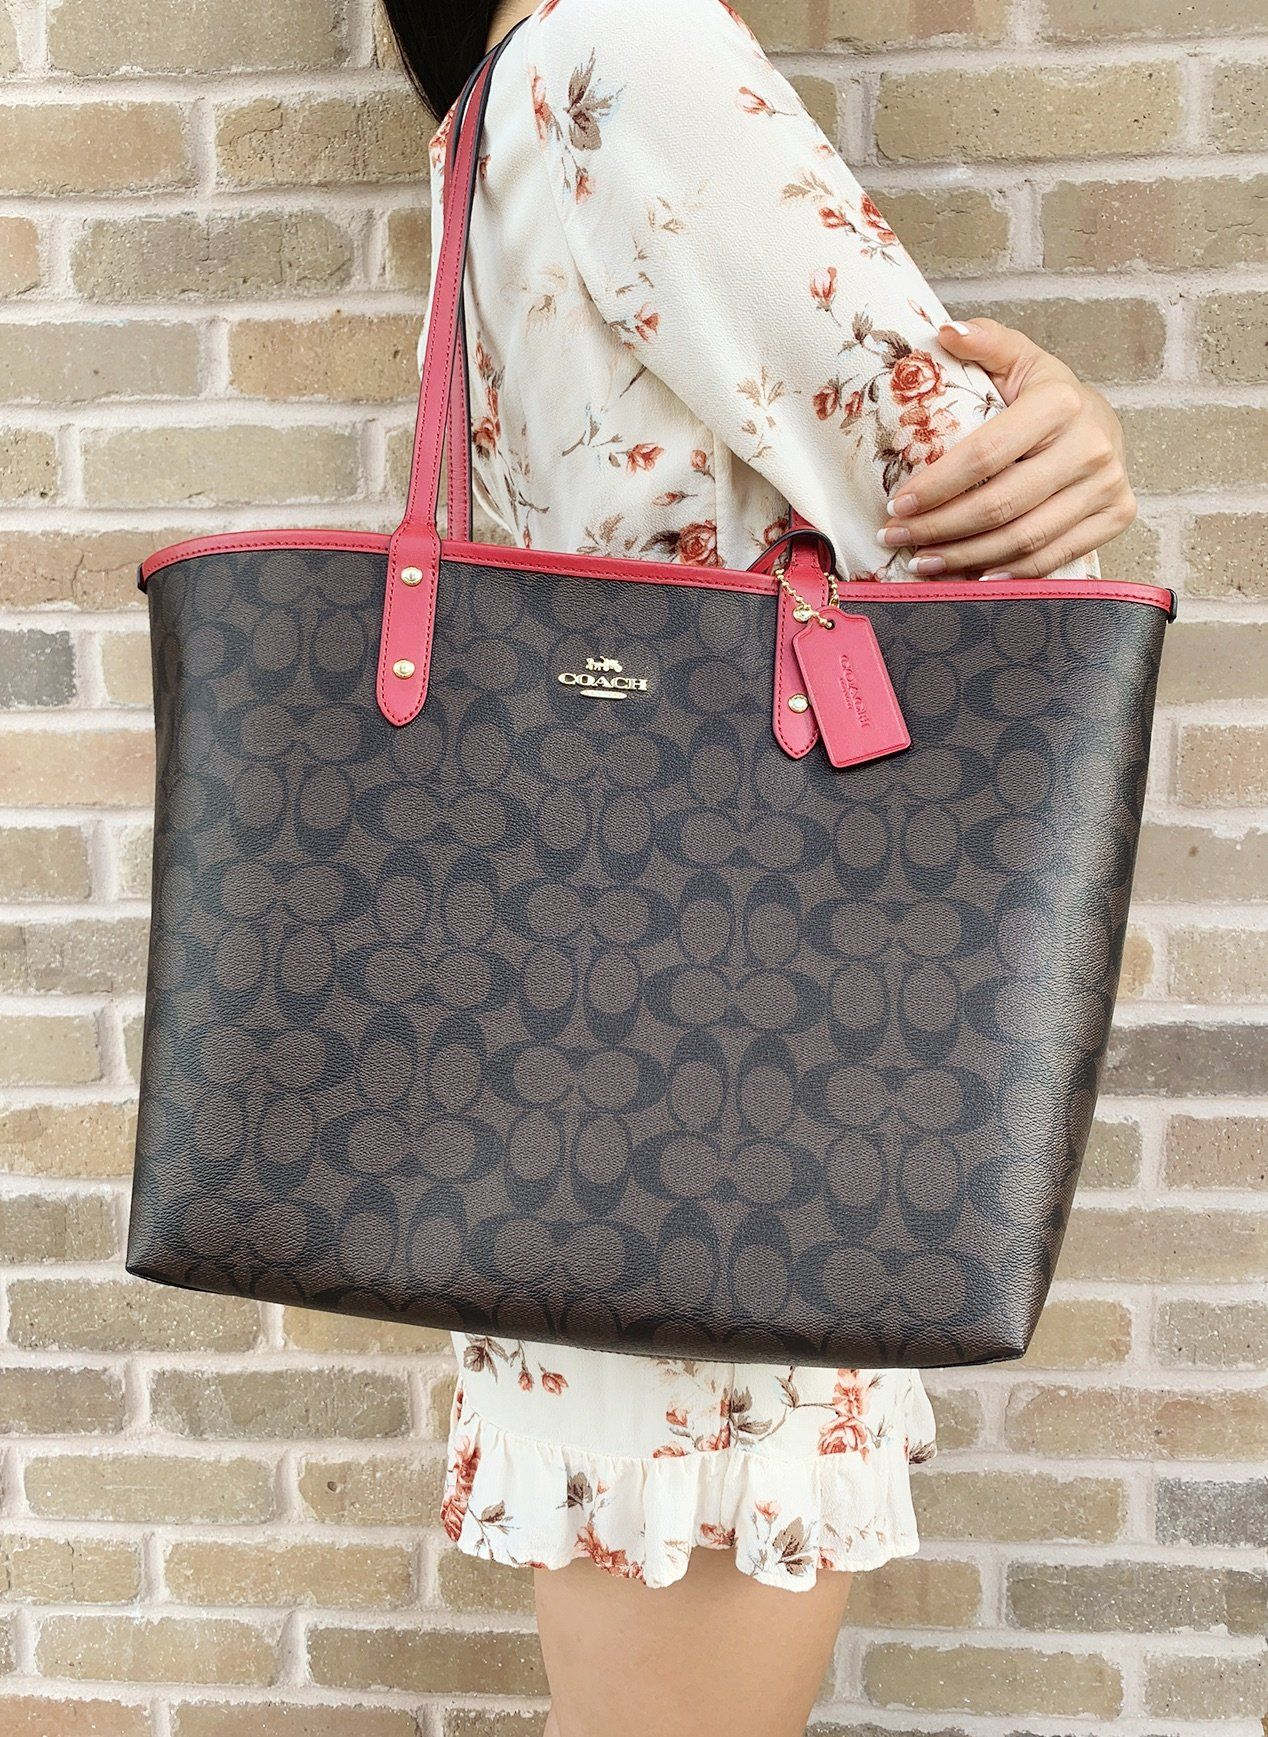 59b1a42c29b2 Coach F36658 Reversible City Tote Signature Brown Red  ebayfashion   poshfashion  ebaybusiness  ebaystore  top  Poshmark  mercariapp  rated   ebayseller   ...